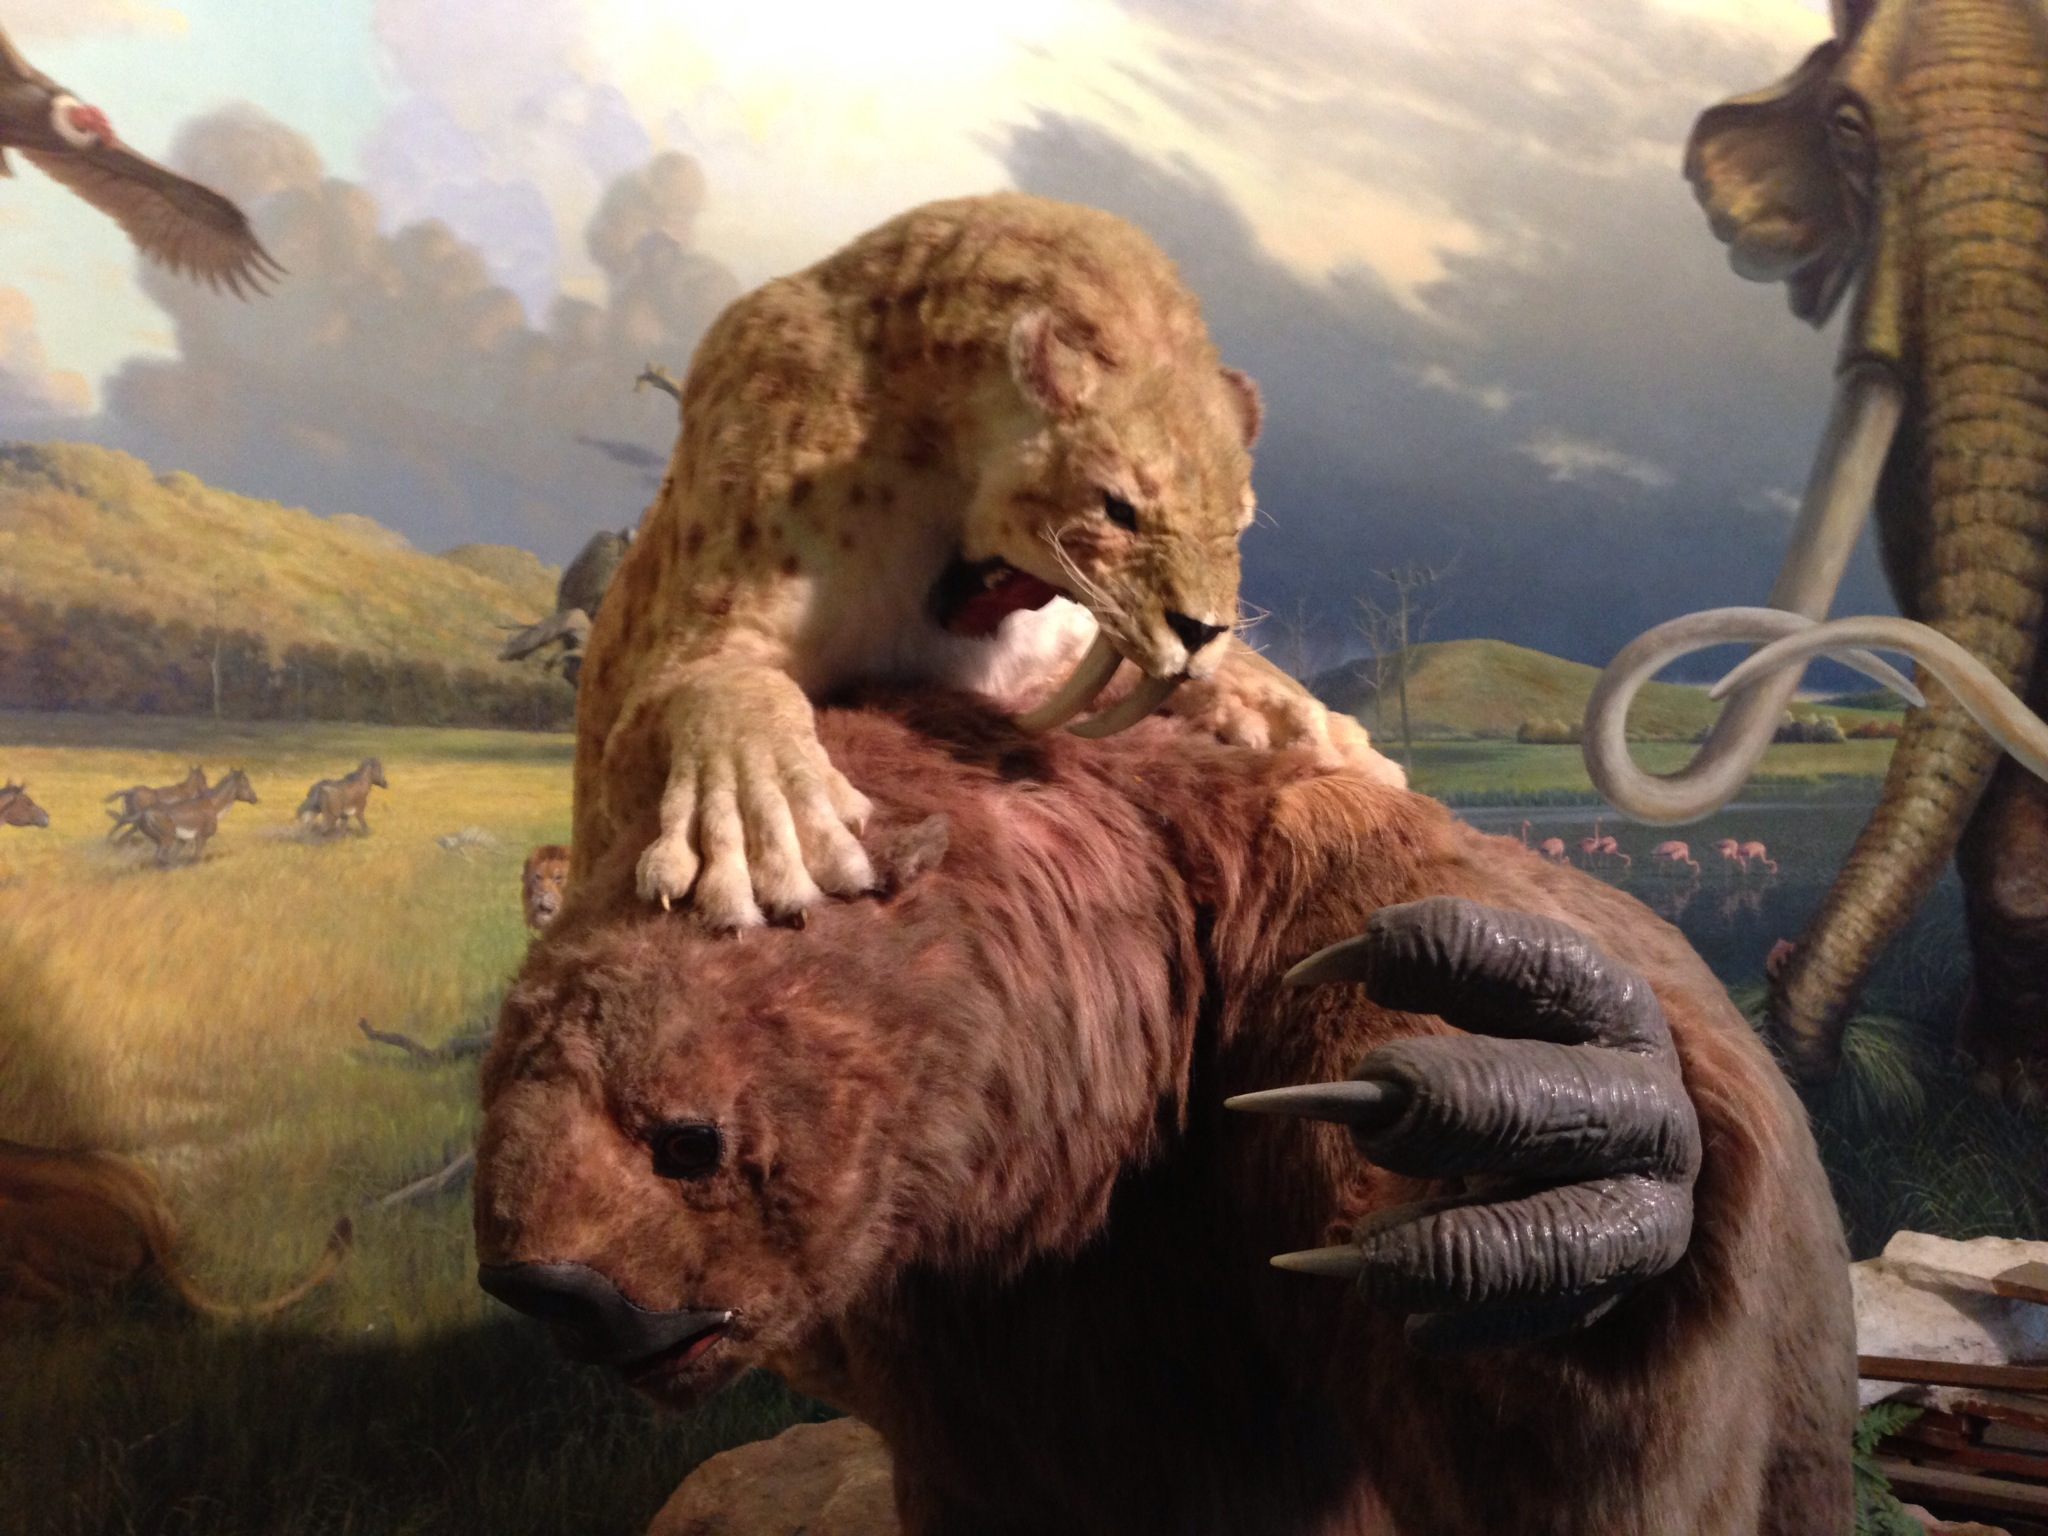 Sloth vs. Saber Tooth Cat